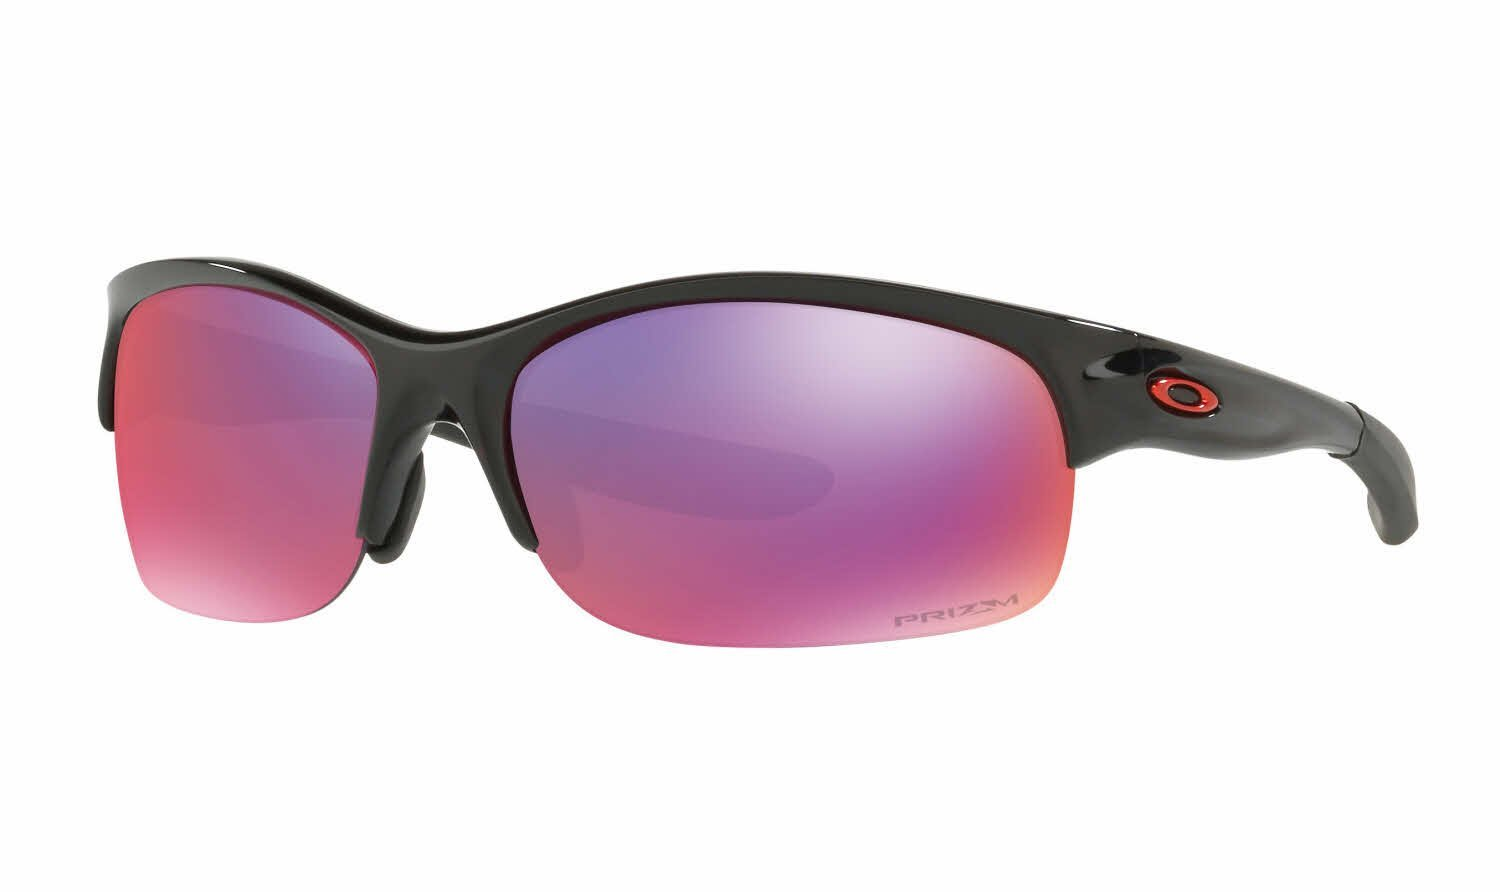 a1e175b45acfb Oakley Commit SQ Running Sunglasses